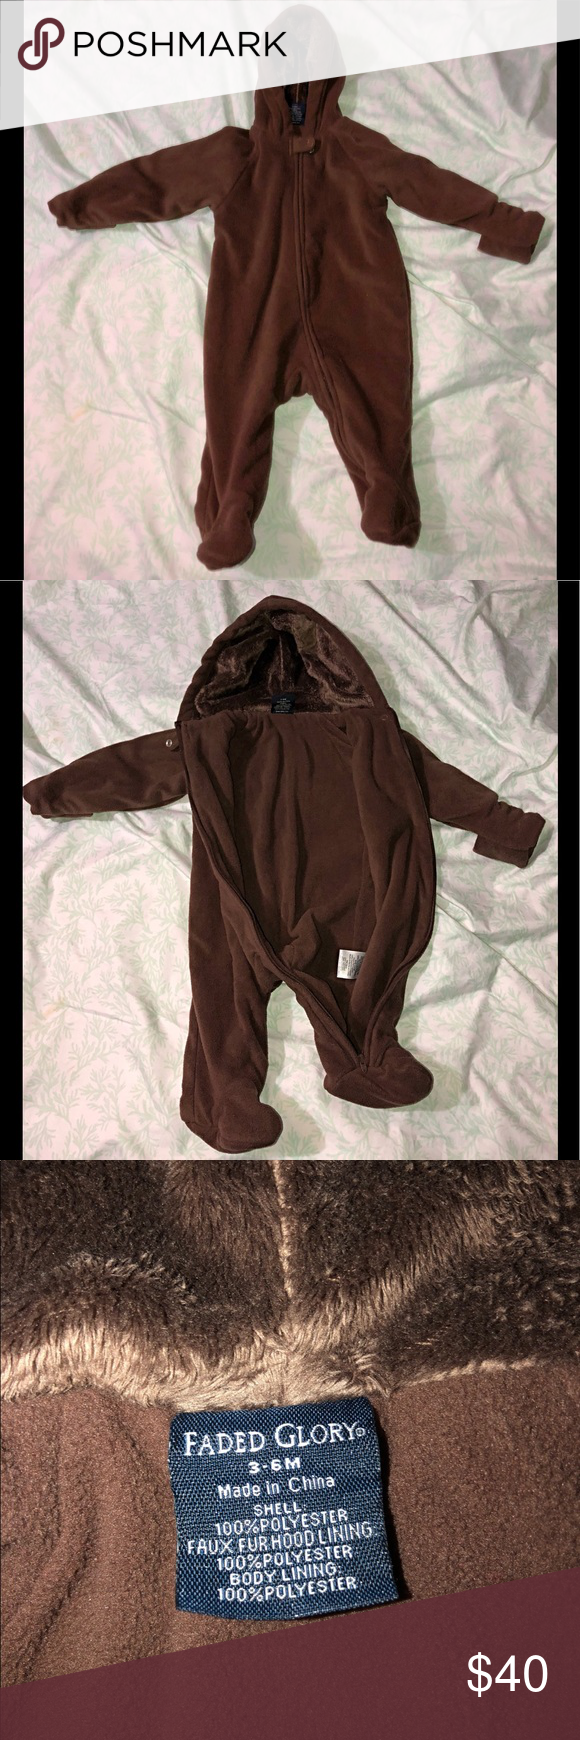 737d67023b46 Warm Material Brown Baby Boy Bear Bunting Make Me Offers! Baby boy ...